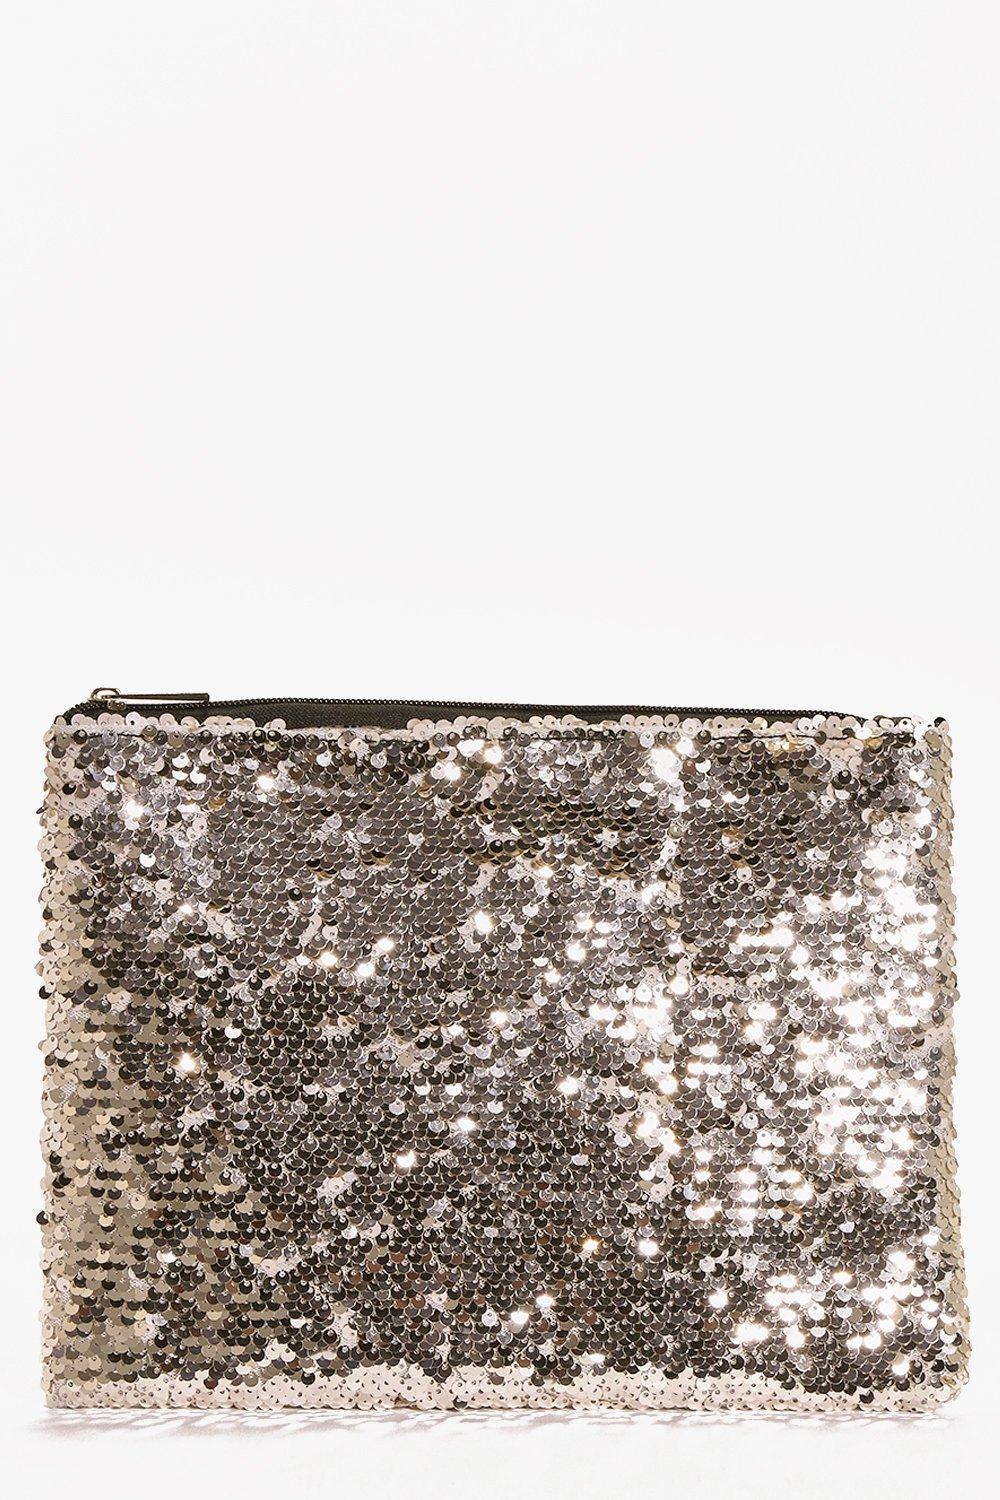 All Over Sequin Clutch Bag gold